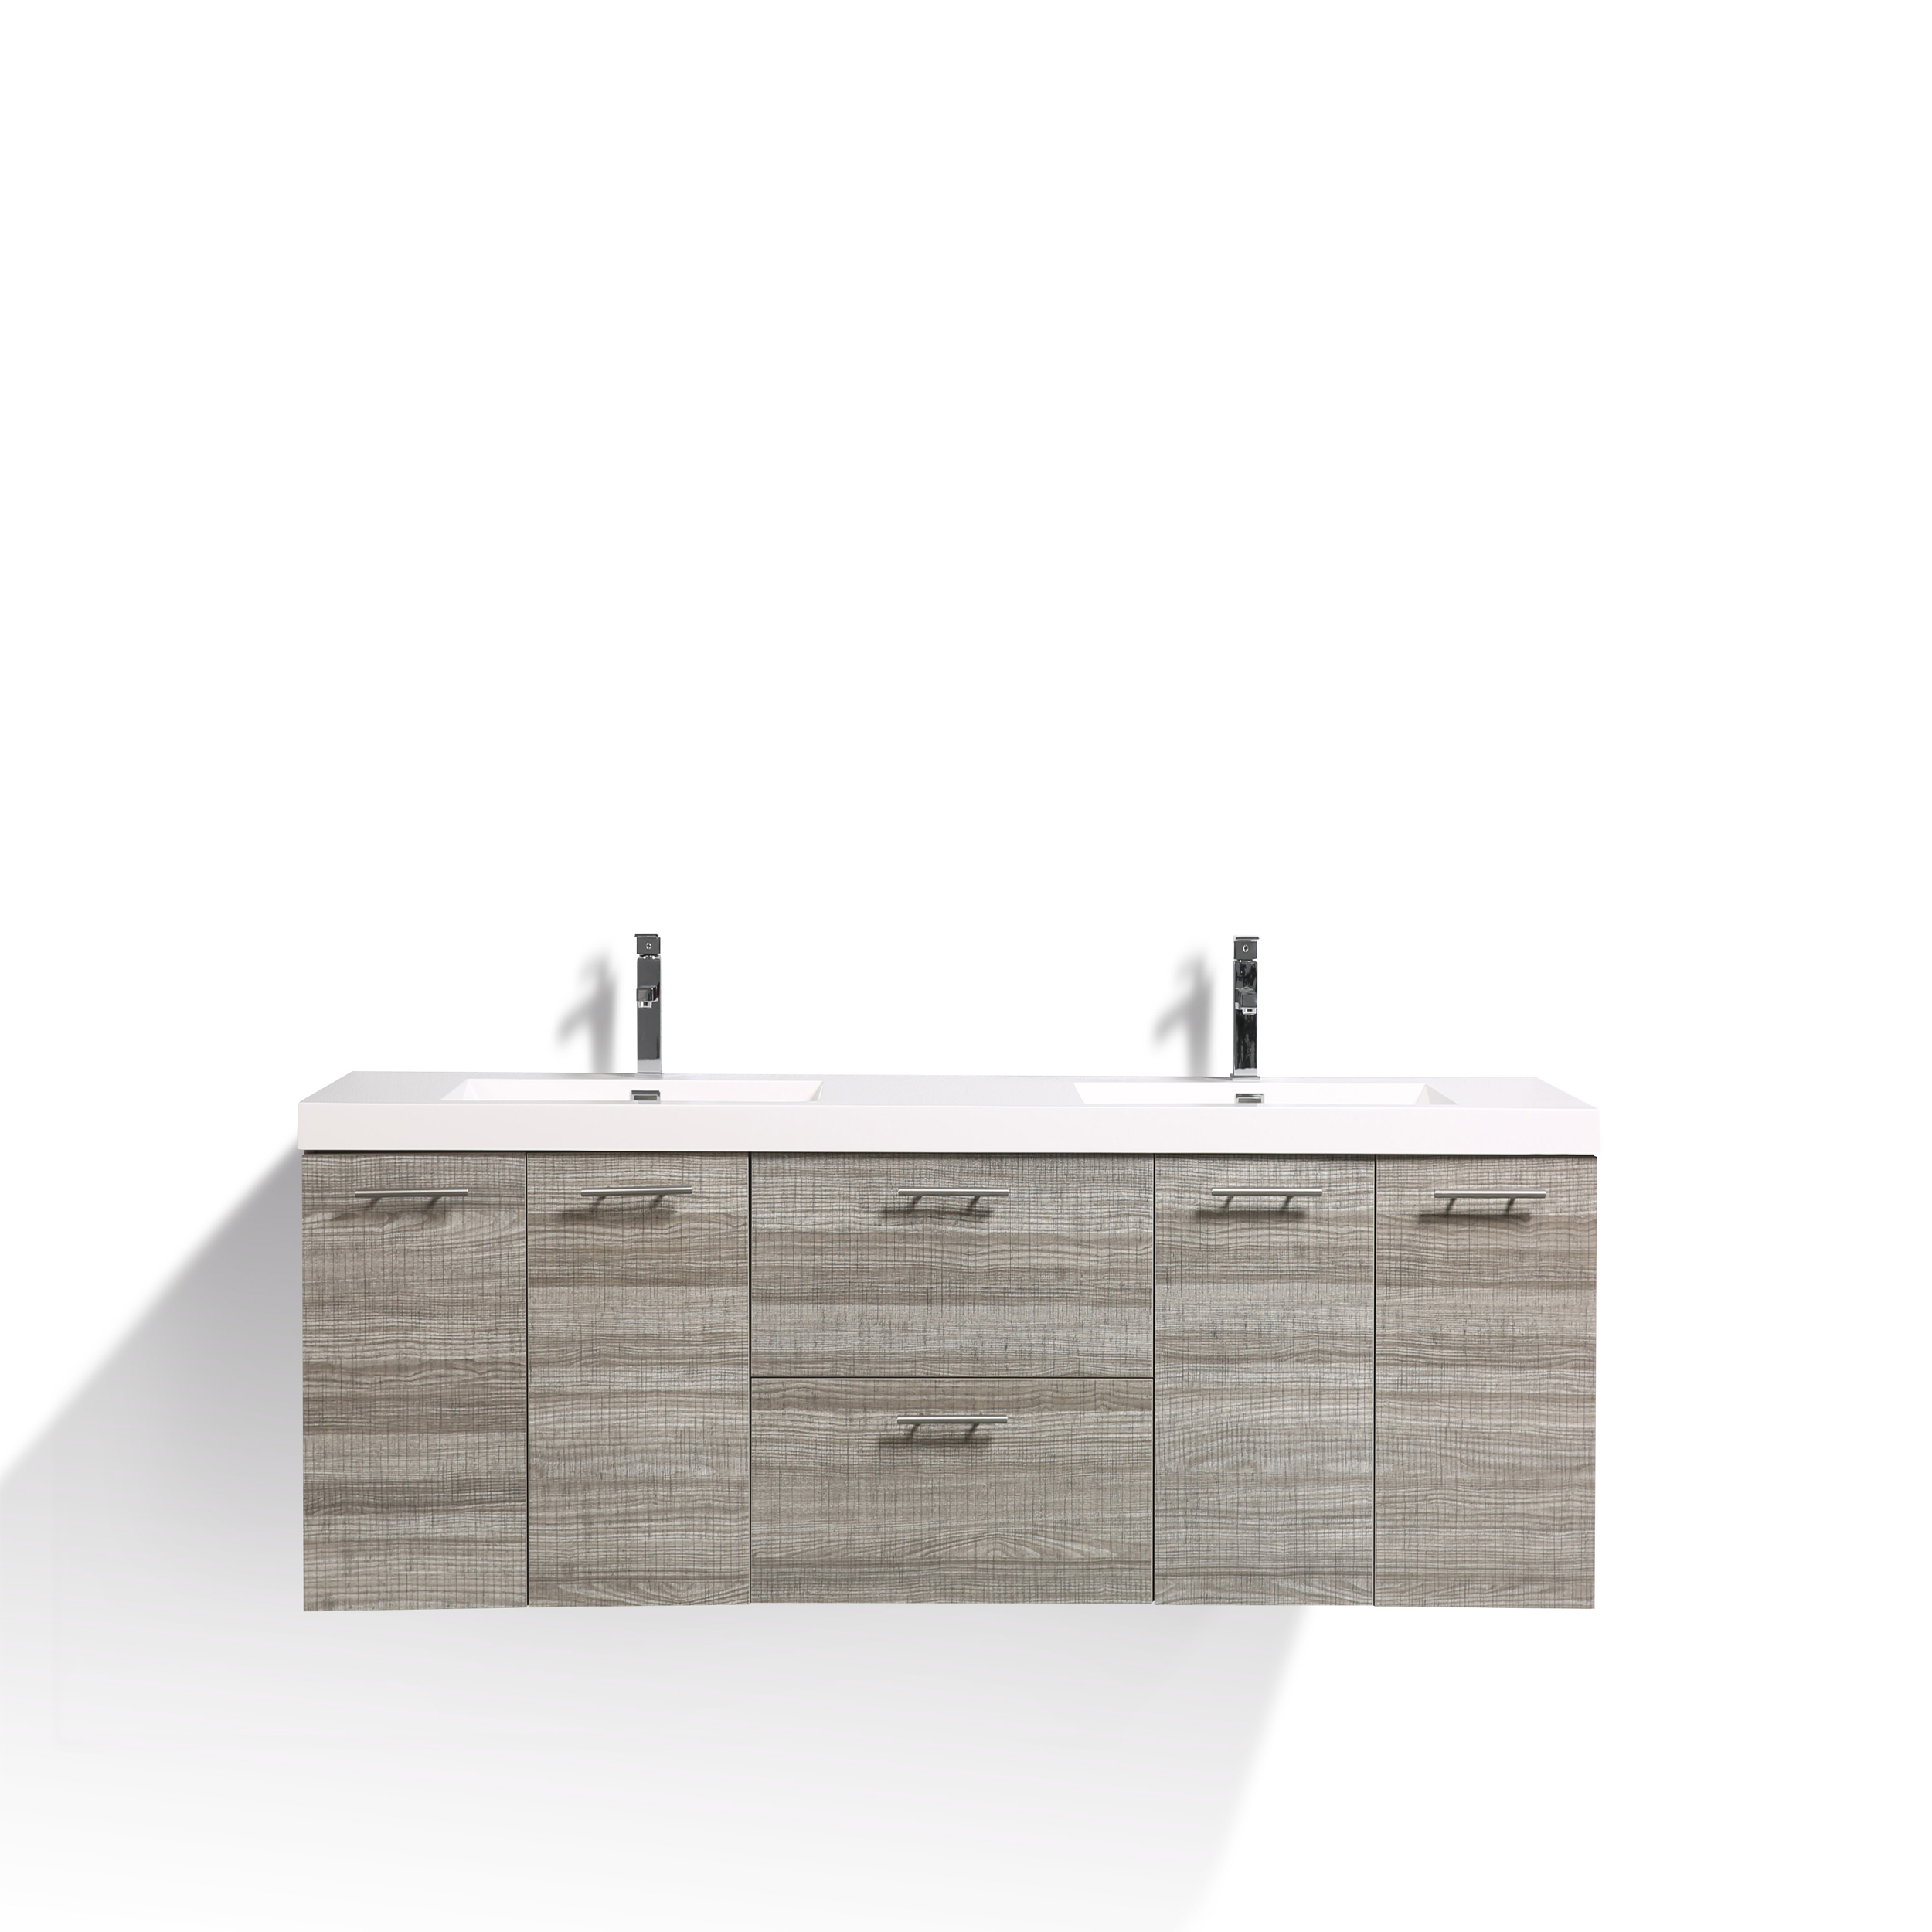 EVVN2100 84ASH DS A Main - Eviva Luxury 84 inch Ash bathroom vanity with integrated acrylic sinks